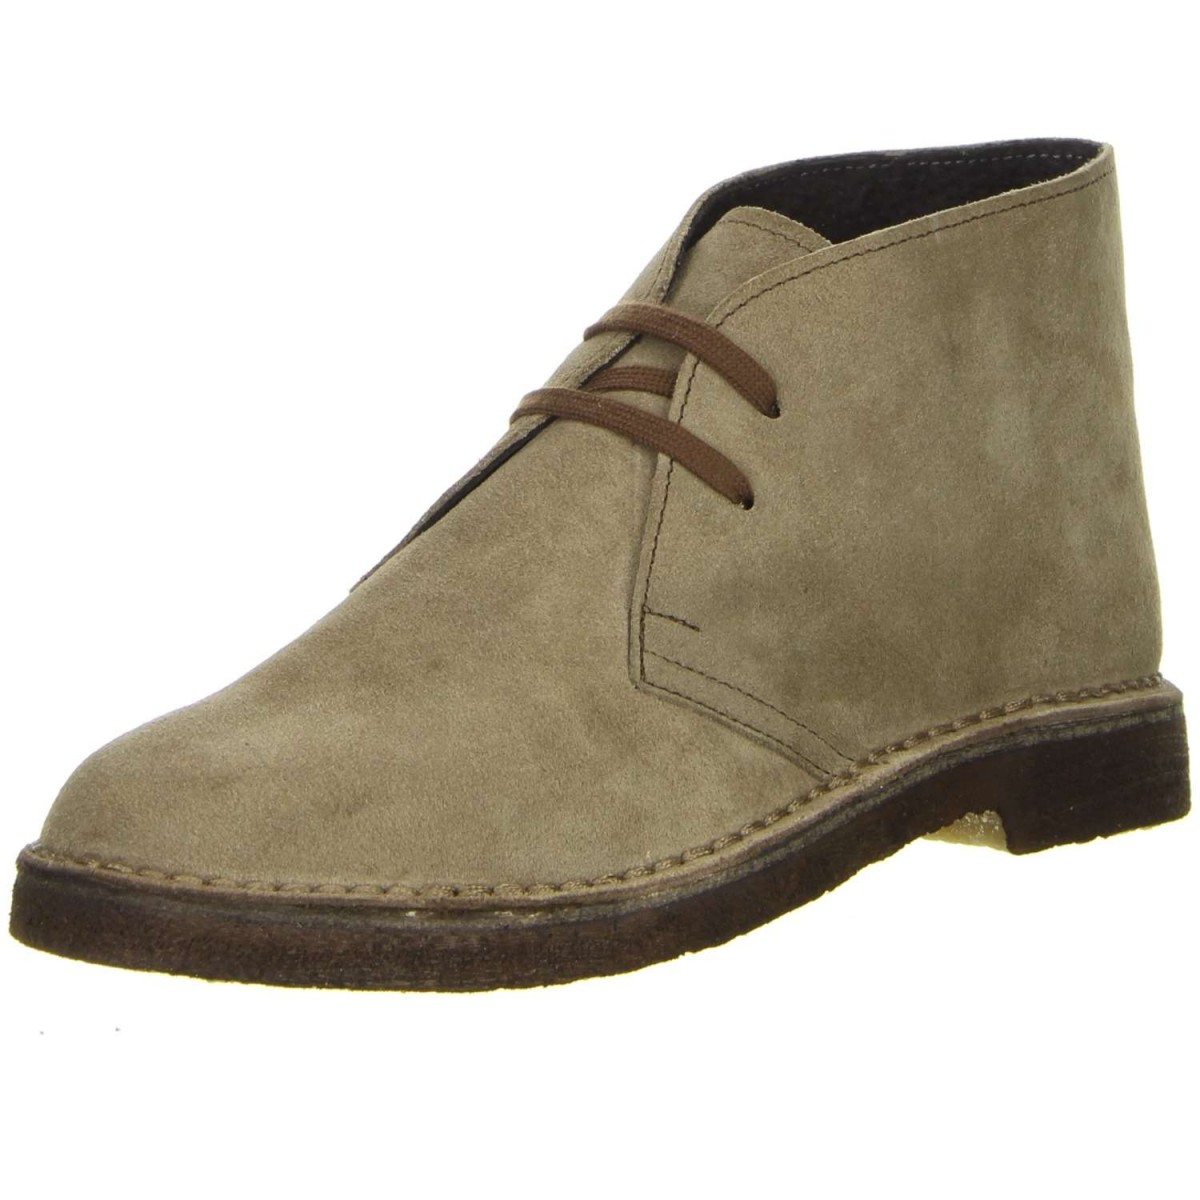 petros compfort damen herren desert boots beige ebay. Black Bedroom Furniture Sets. Home Design Ideas